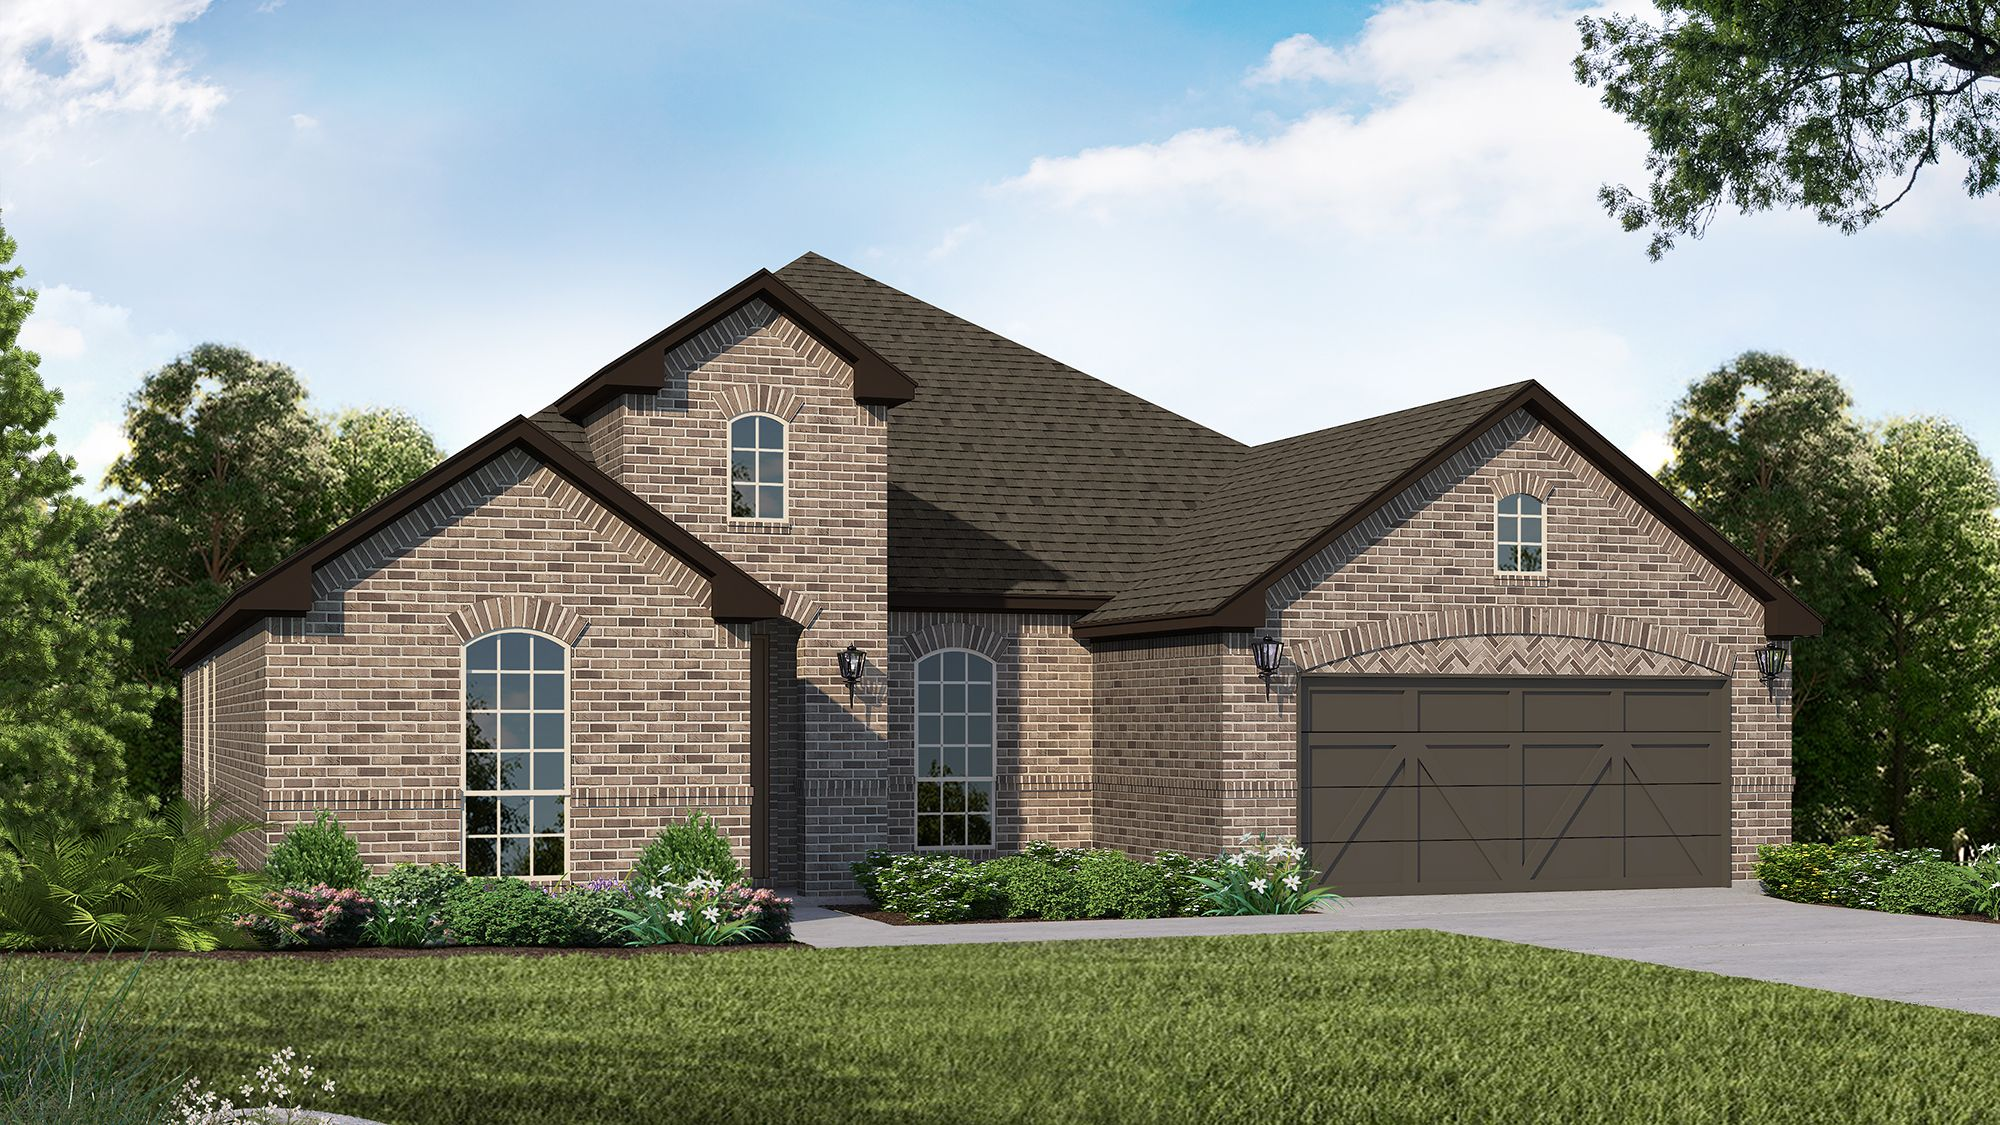 Plan 1688 Elevation A by American Legend Homes